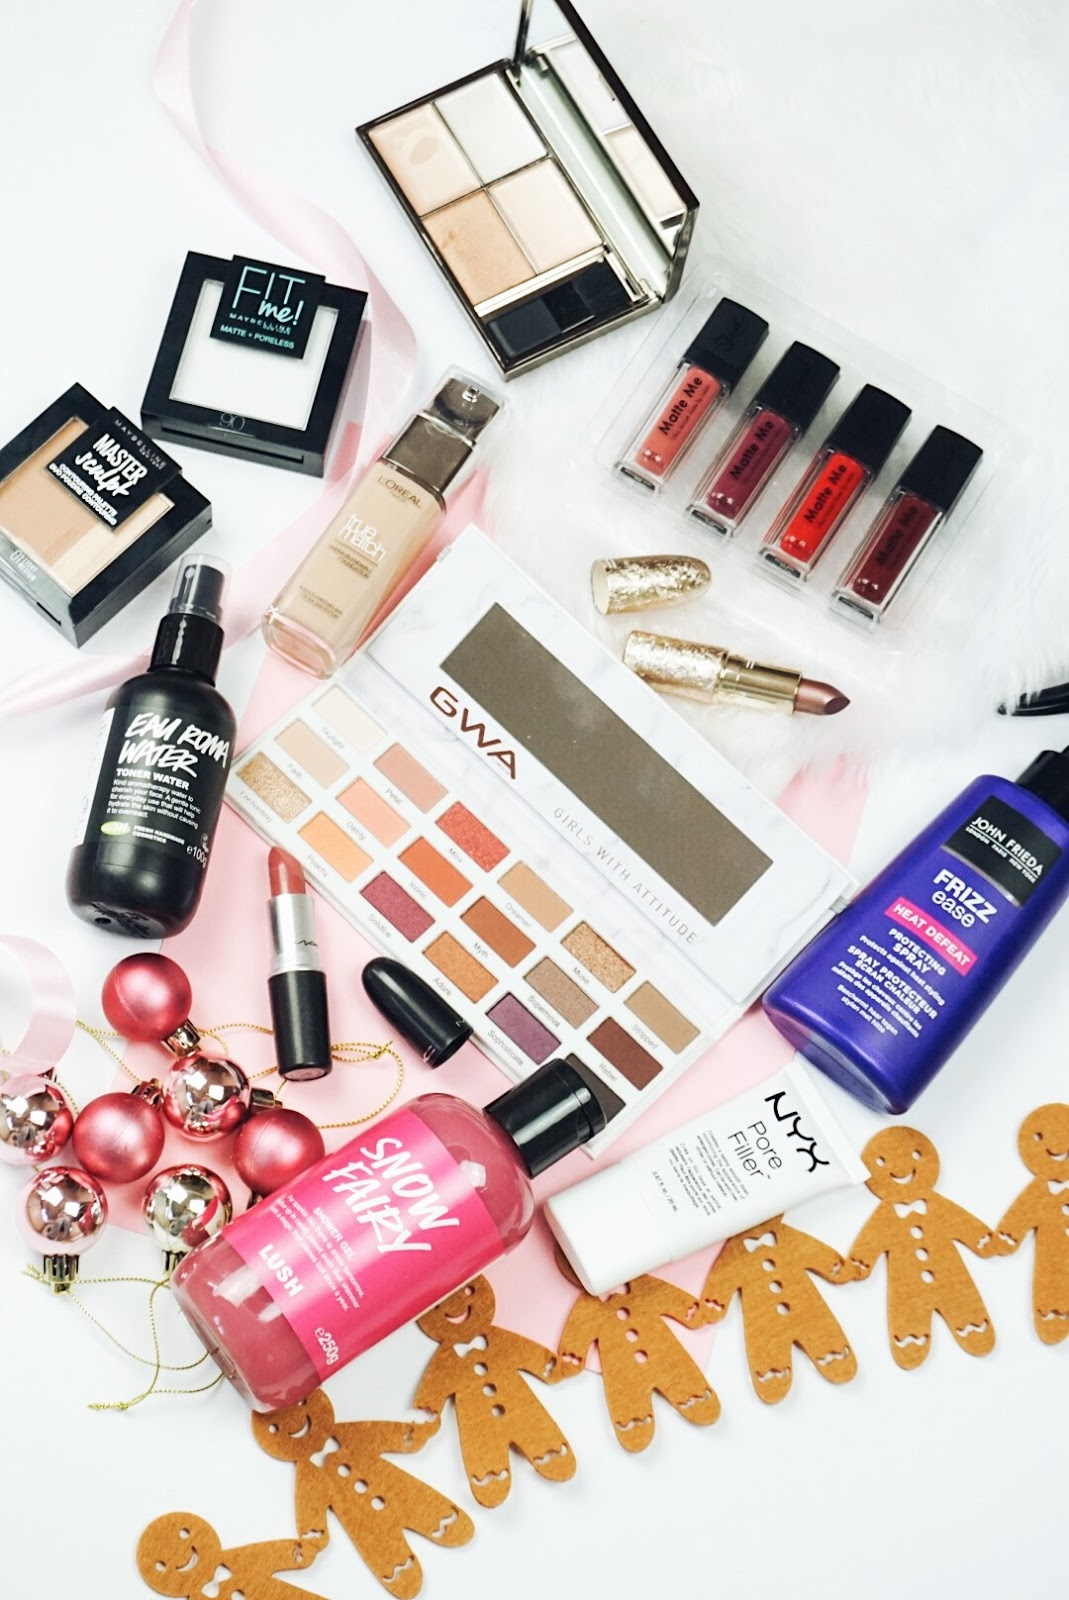 Whats New In The Beauty Stash : Nov 2017